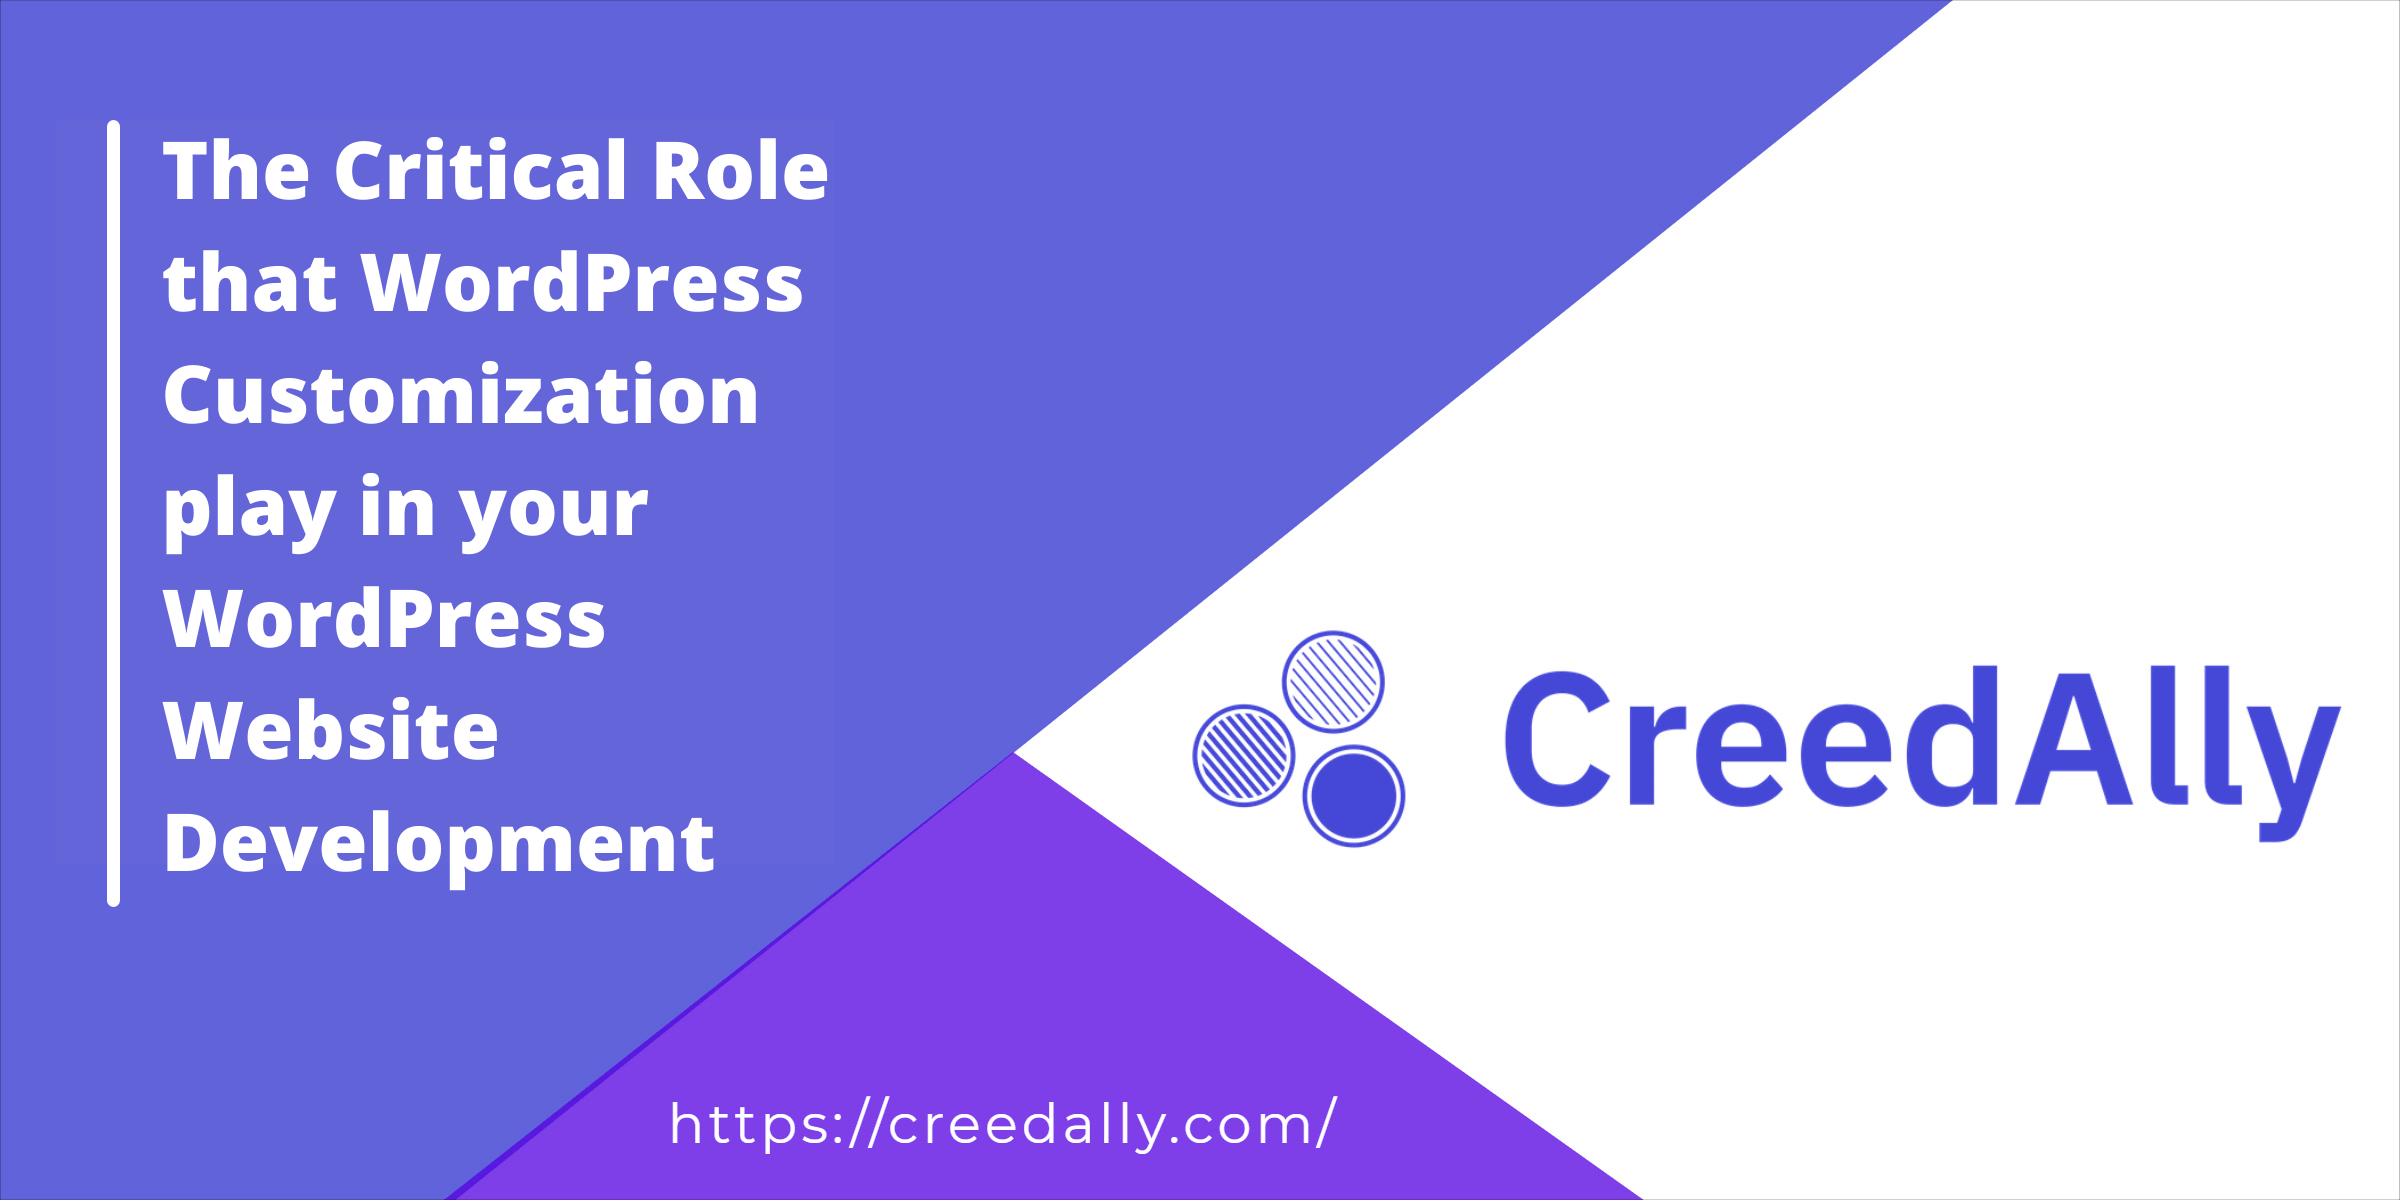 The Critical Role That WordPress Customisation Play in Your WordPress Website Development